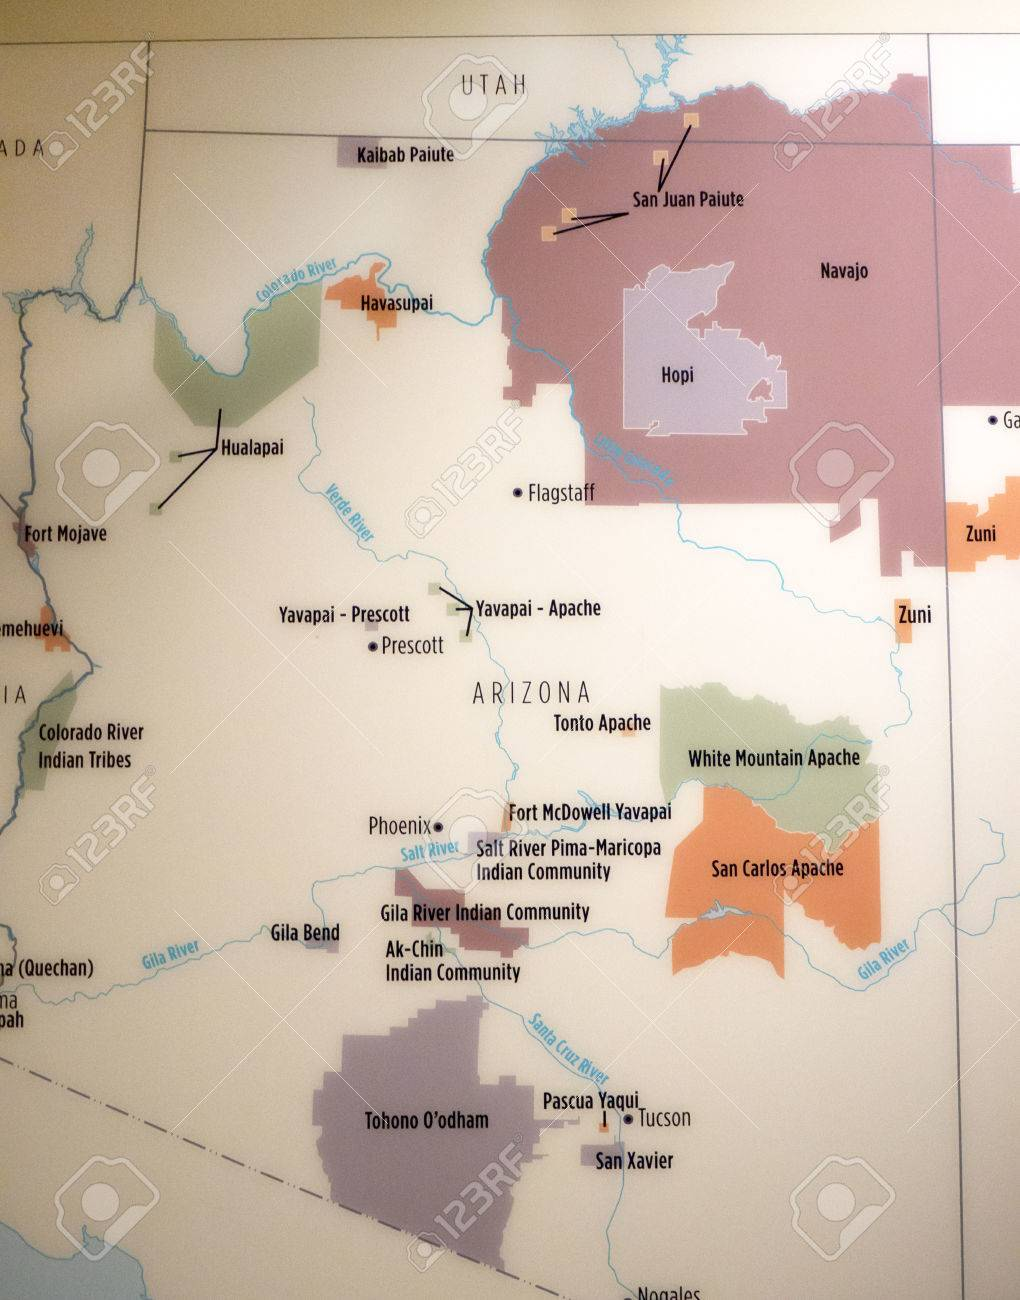 Map Showing The Native American Tribes In The South West Of The - Map of native american tribes in arizona